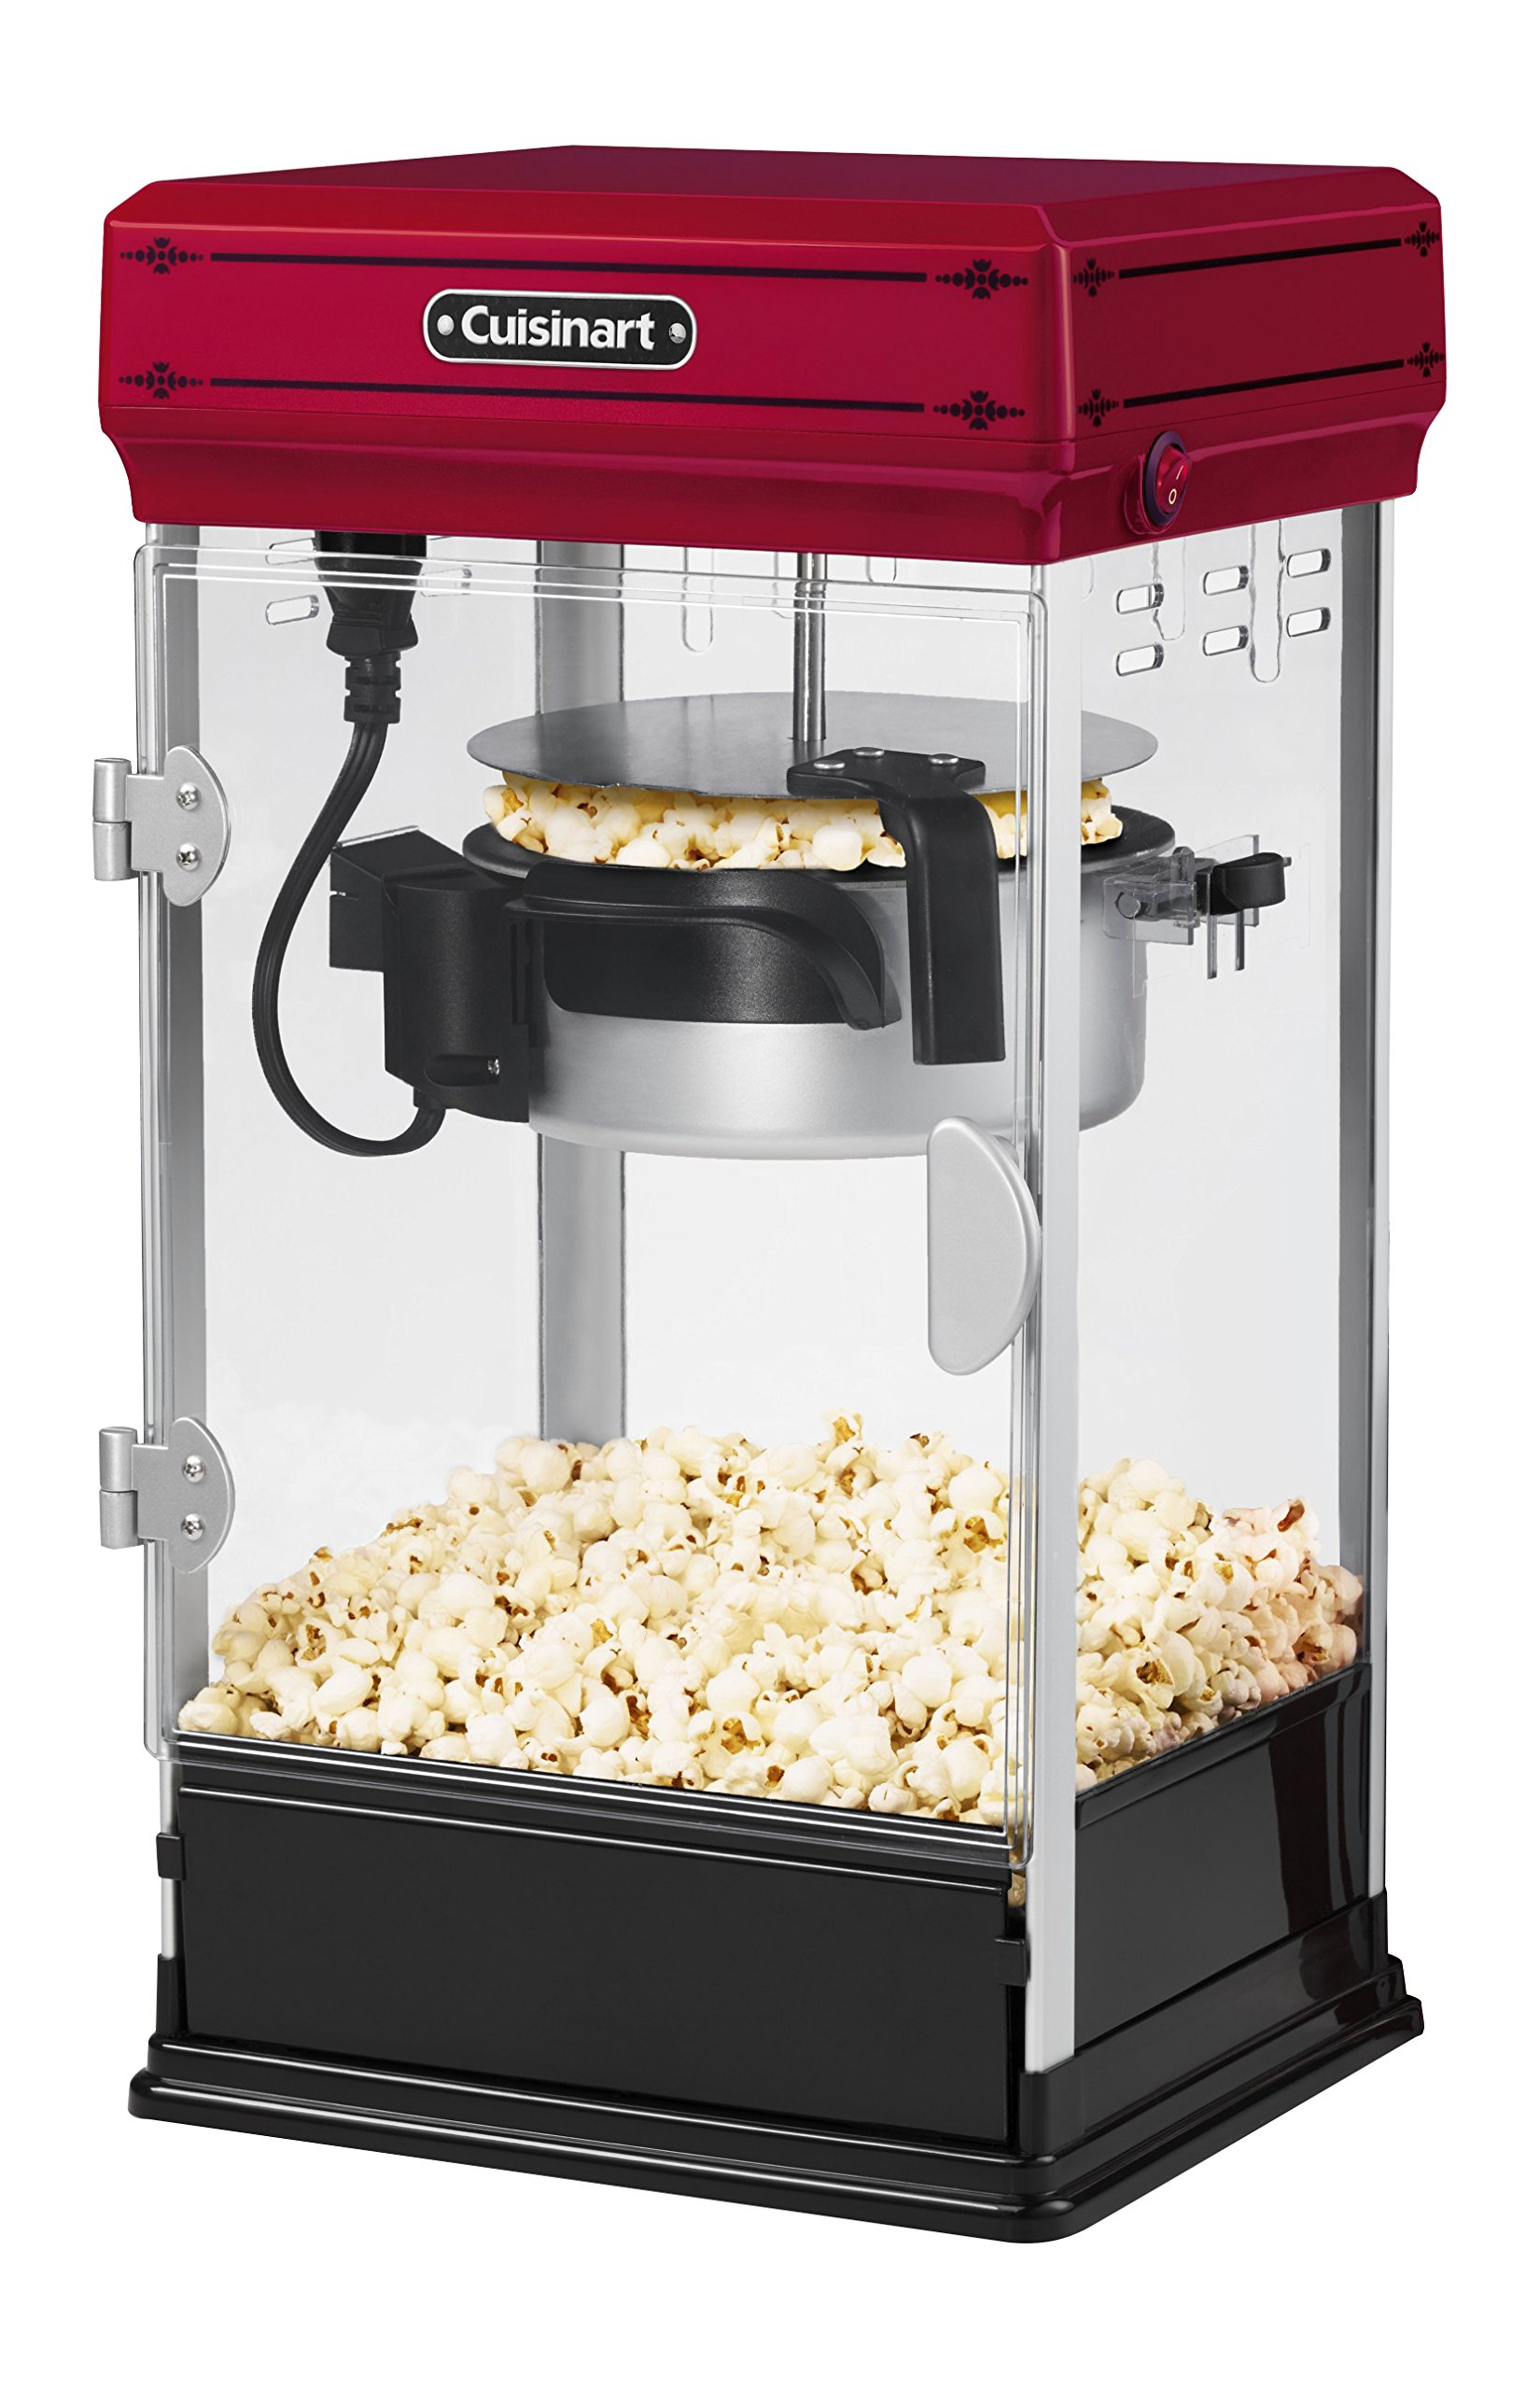 Cuisinart CPM-28 Classic-Style Popcorn Maker, Red by Cuisinart